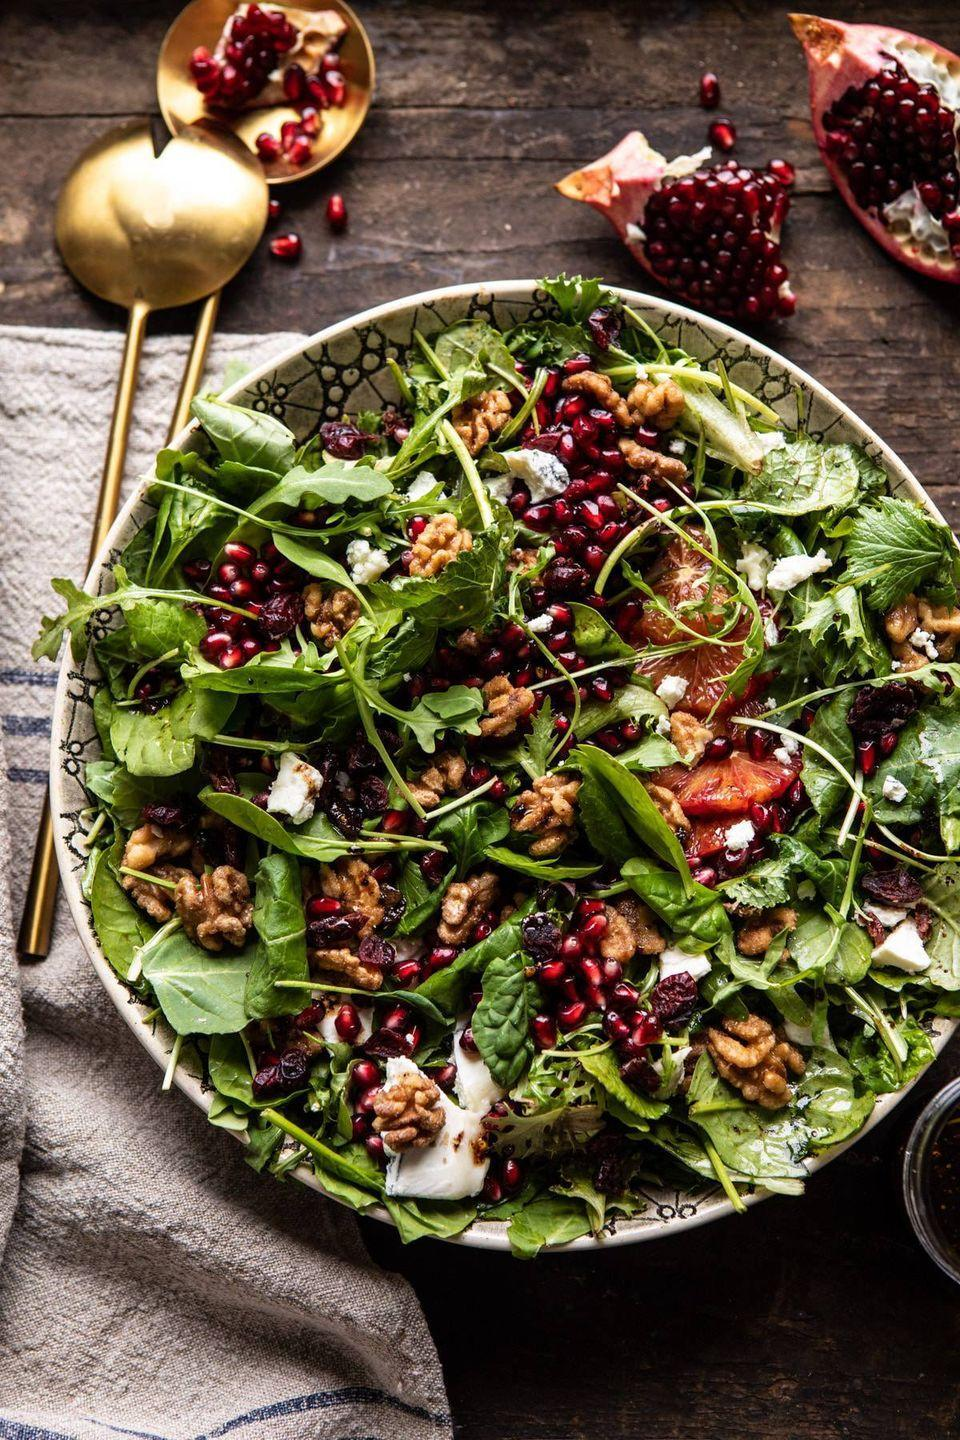 """<p>Arugula and mixed greens are topped with candied walnuts, blood orange pieces, and a generous amount of pomegranate arils. Your Thanksgiving diners will love it!</p><p><strong>Get the recipe at <a href=""""https://www.halfbakedharvest.com/winter-salad-maple-candied-walnuts-balsamic-fig-dressing-big-giveaway/"""" rel=""""nofollow noopener"""" target=""""_blank"""" data-ylk=""""slk:Half Baked Harvest"""" class=""""link rapid-noclick-resp"""">Half Baked Harvest</a>.</strong> </p>"""